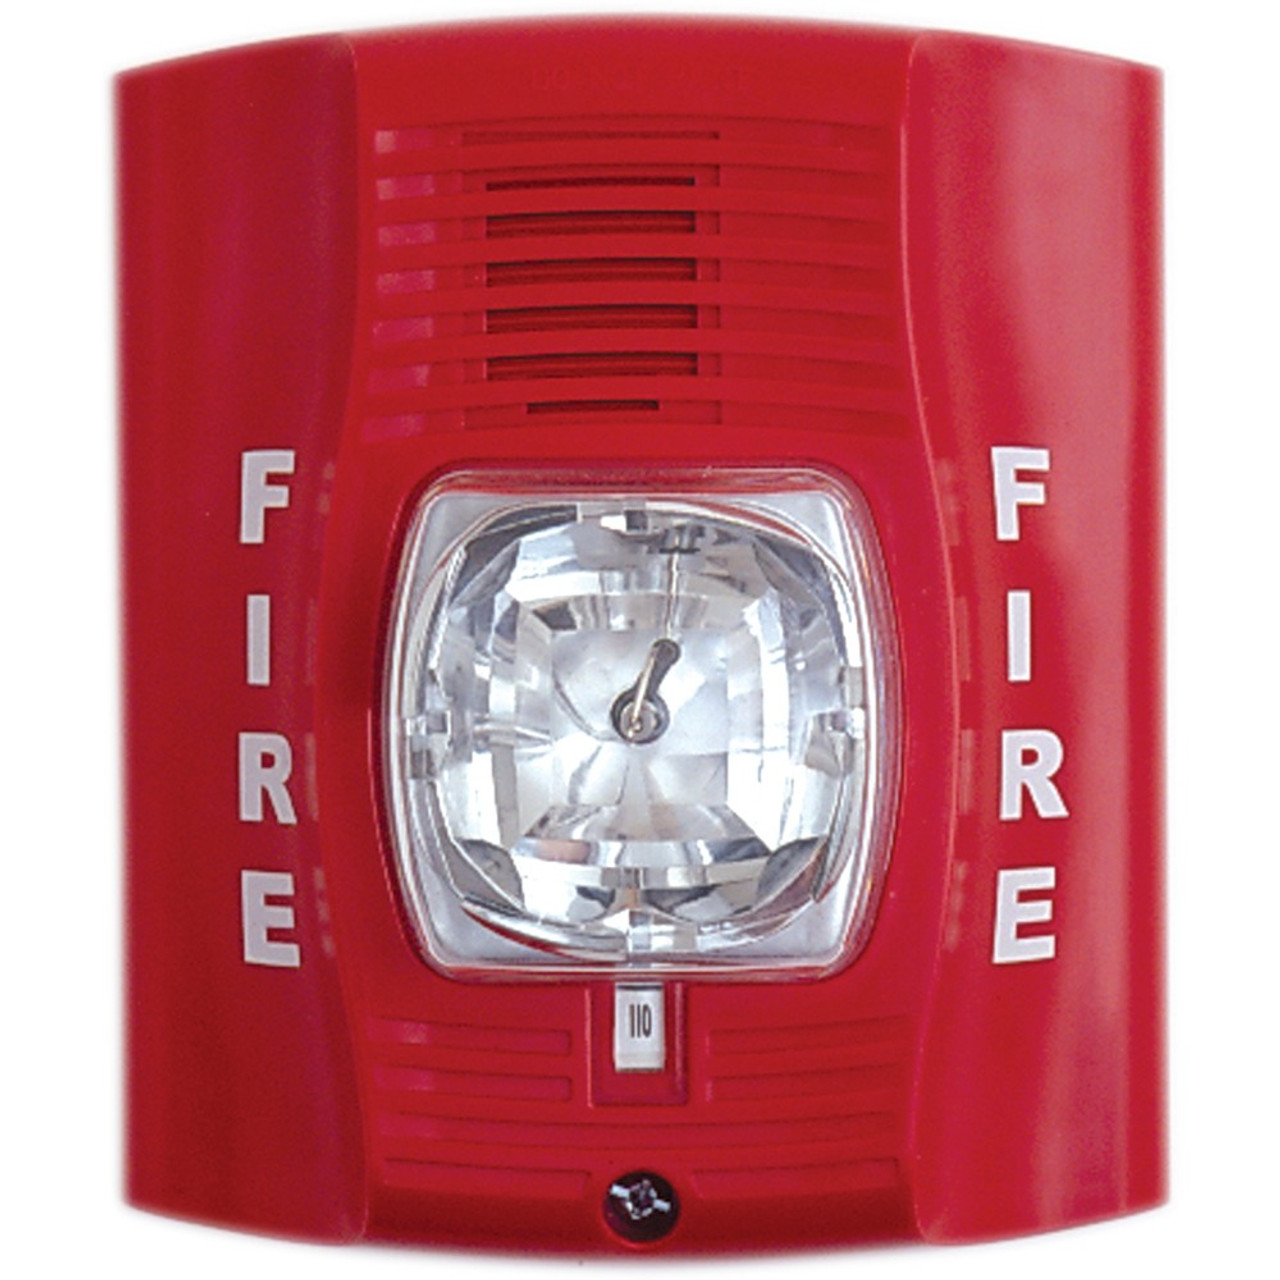 Fire Alarm Strobe Light Hidden Camera W Dvr Amp Battery